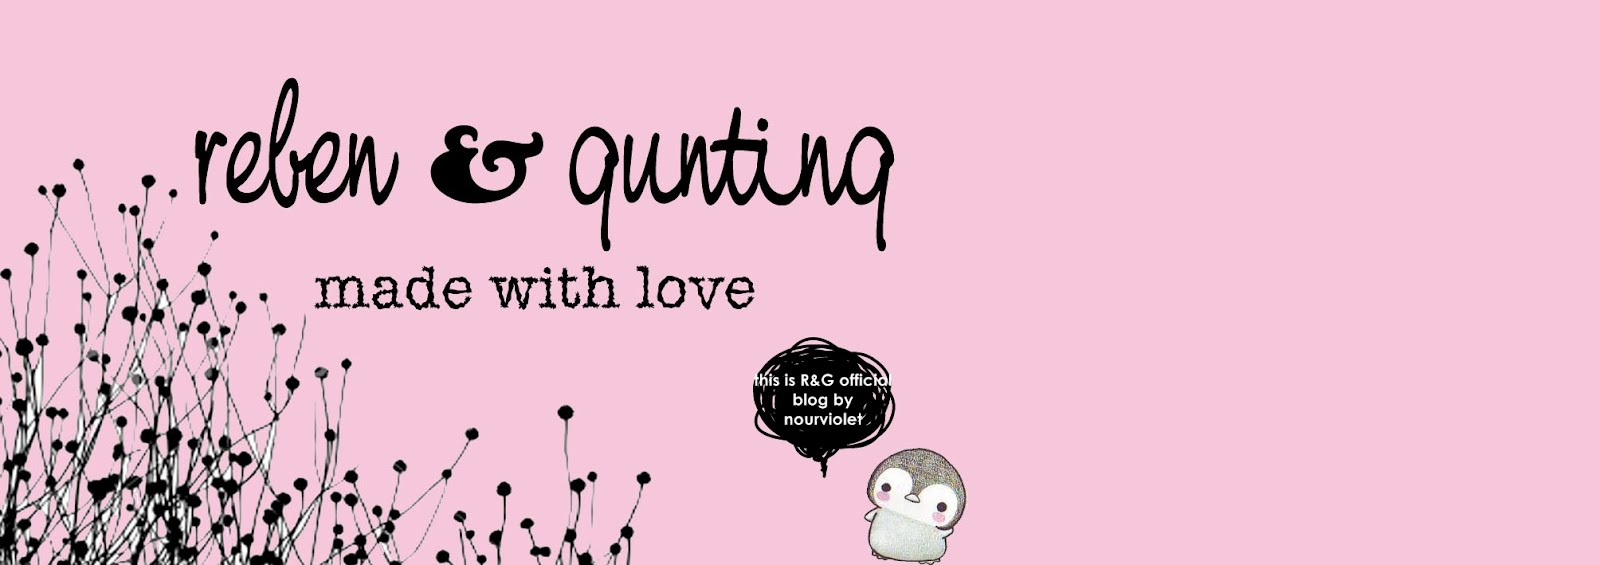 reben&gunting made with love